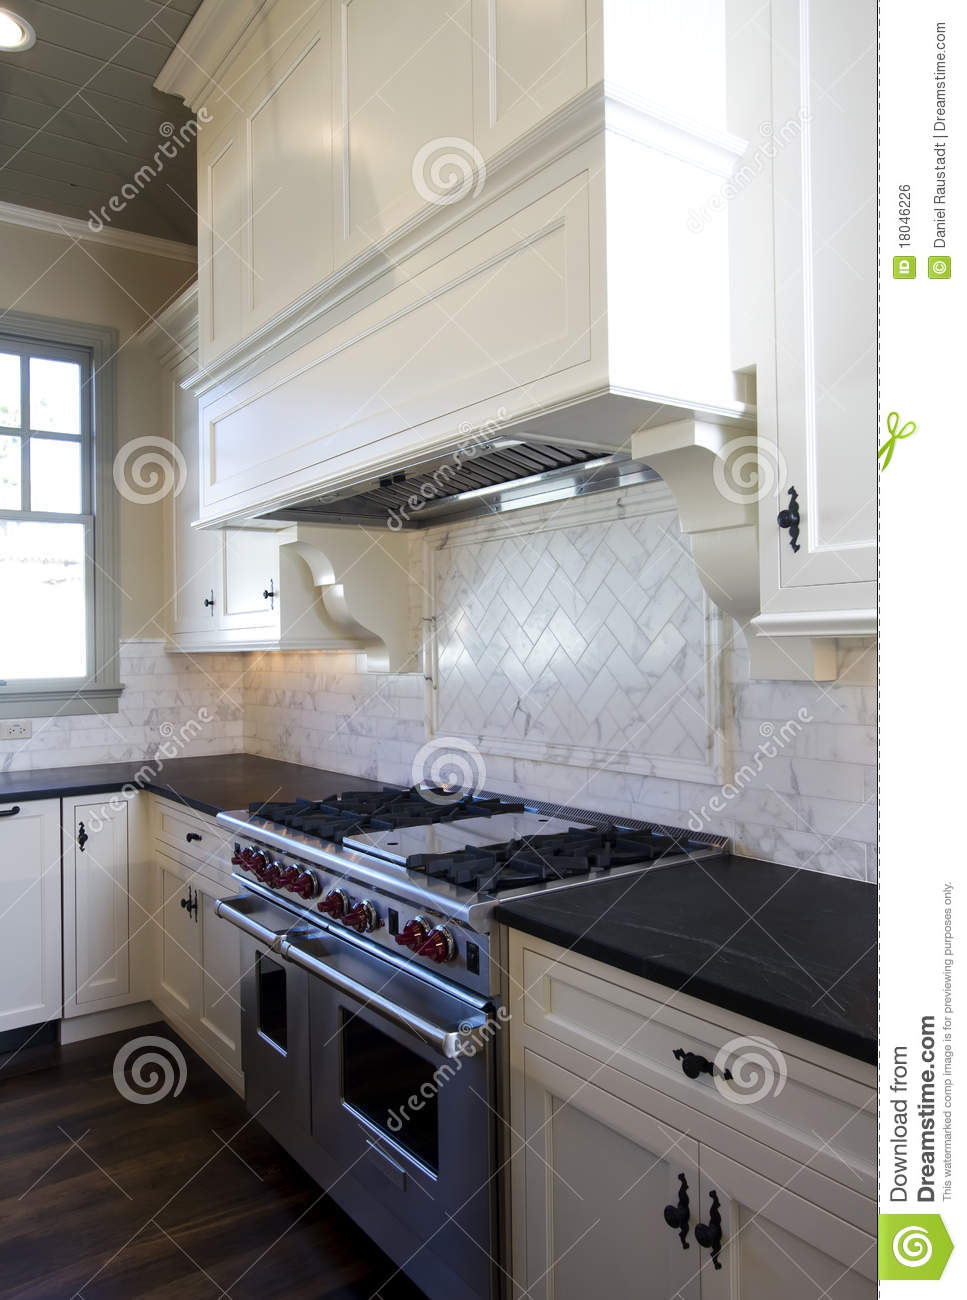 Cottage Style White Kitchen Royalty Free Stock Image - Image: 18046226